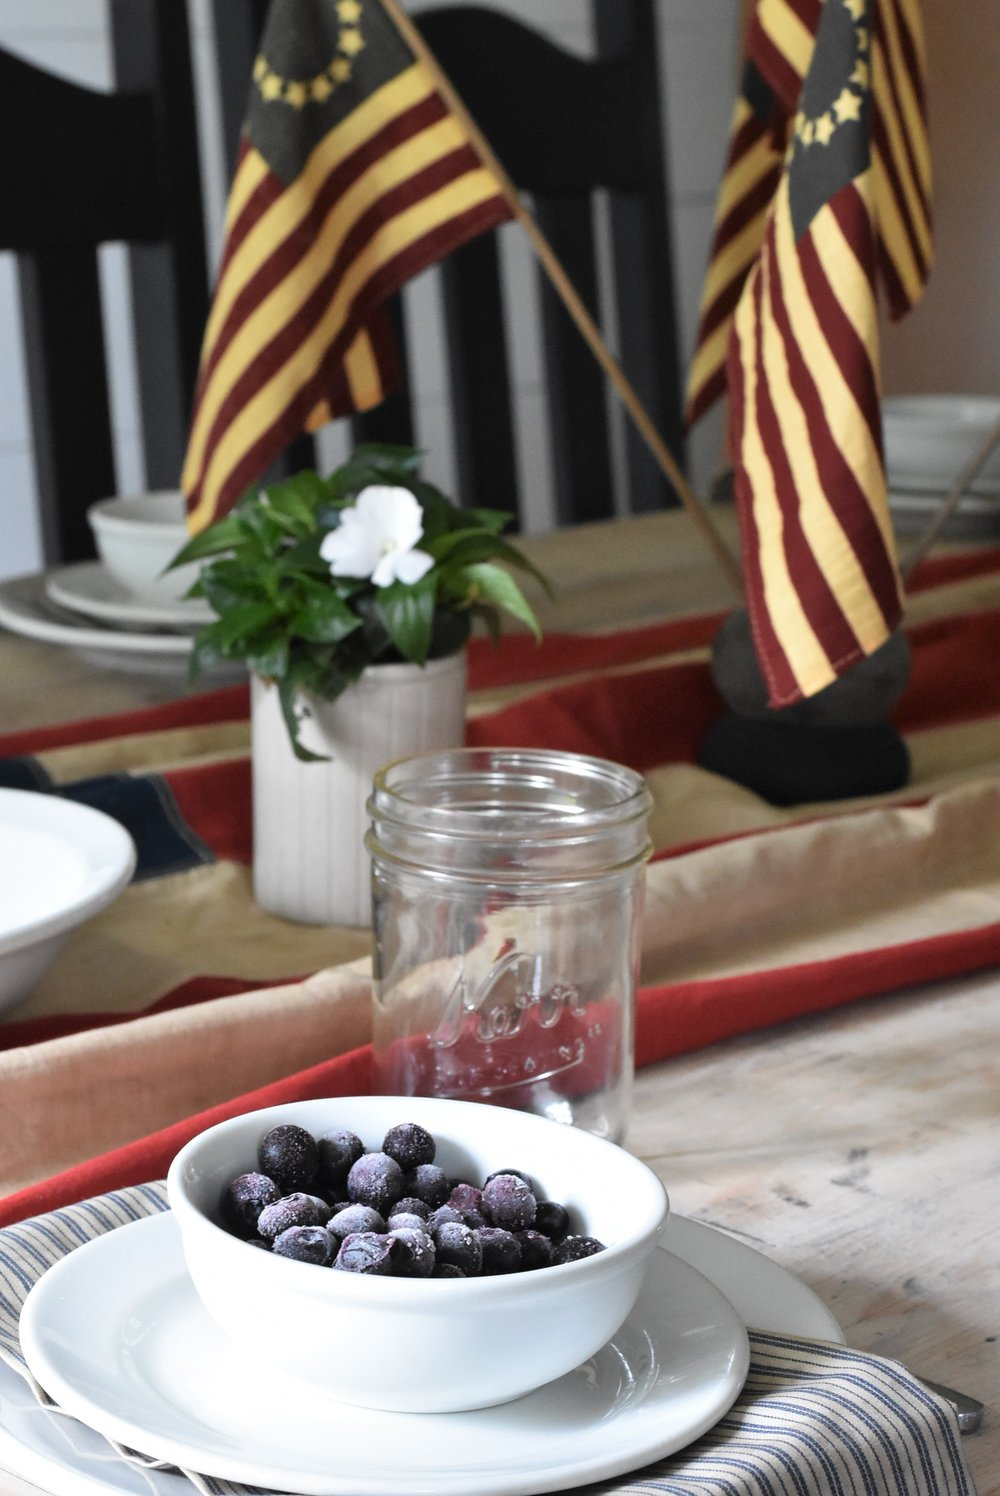 July 4th Table Setting for a Simple Farmhouse Style in the traditional Red White and Blue